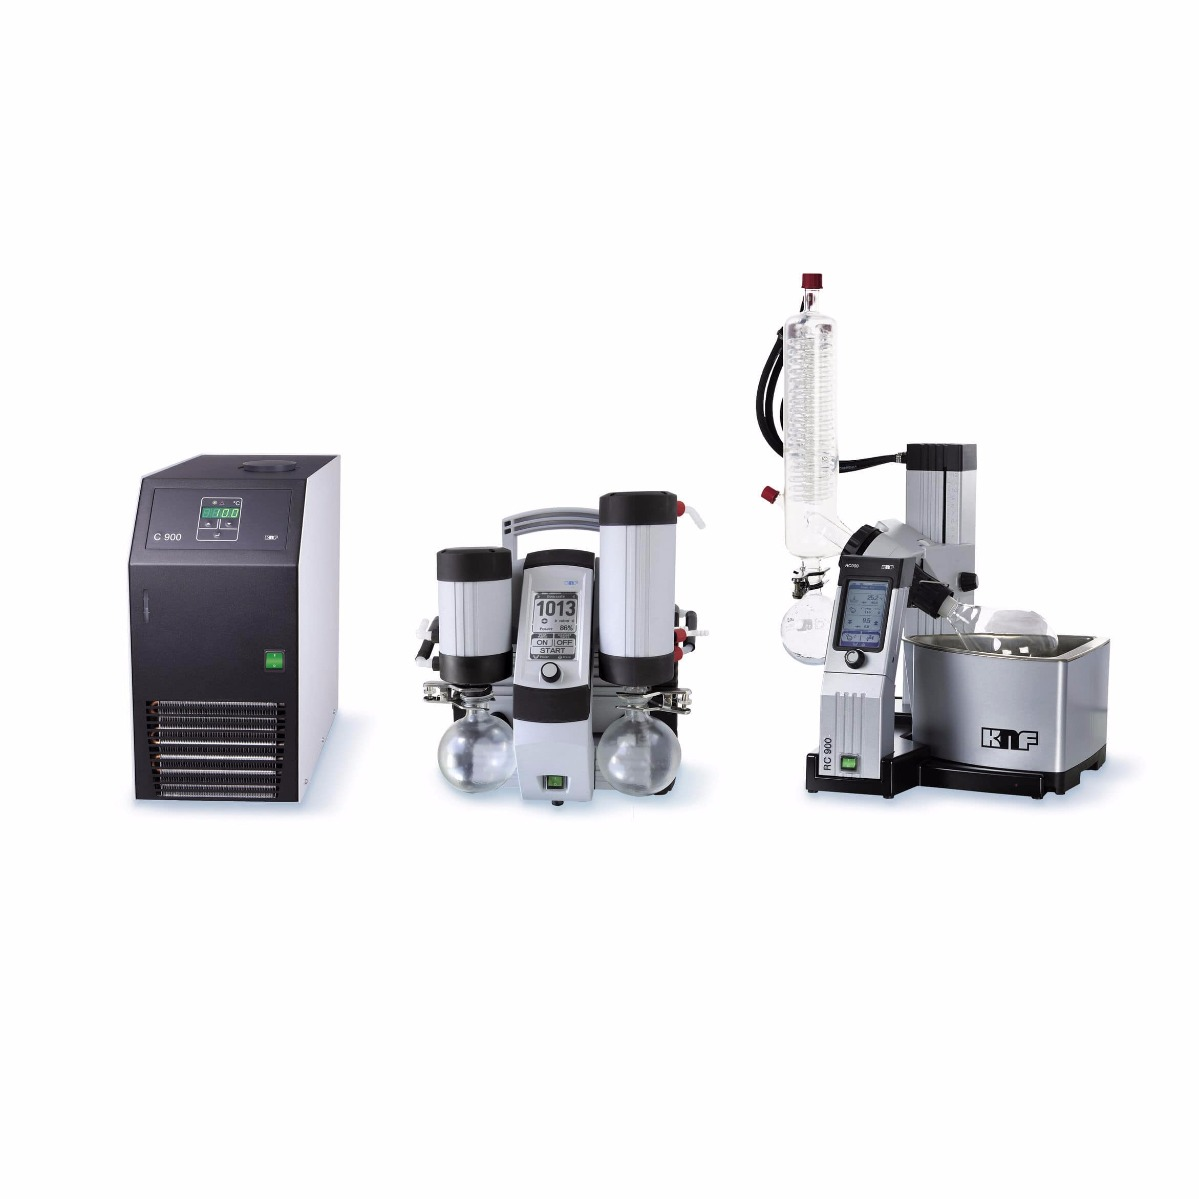 KNF RC600 Rotary Evaporator System, Includes SC920 Vaccum System, C900 Chiller, and Accessories